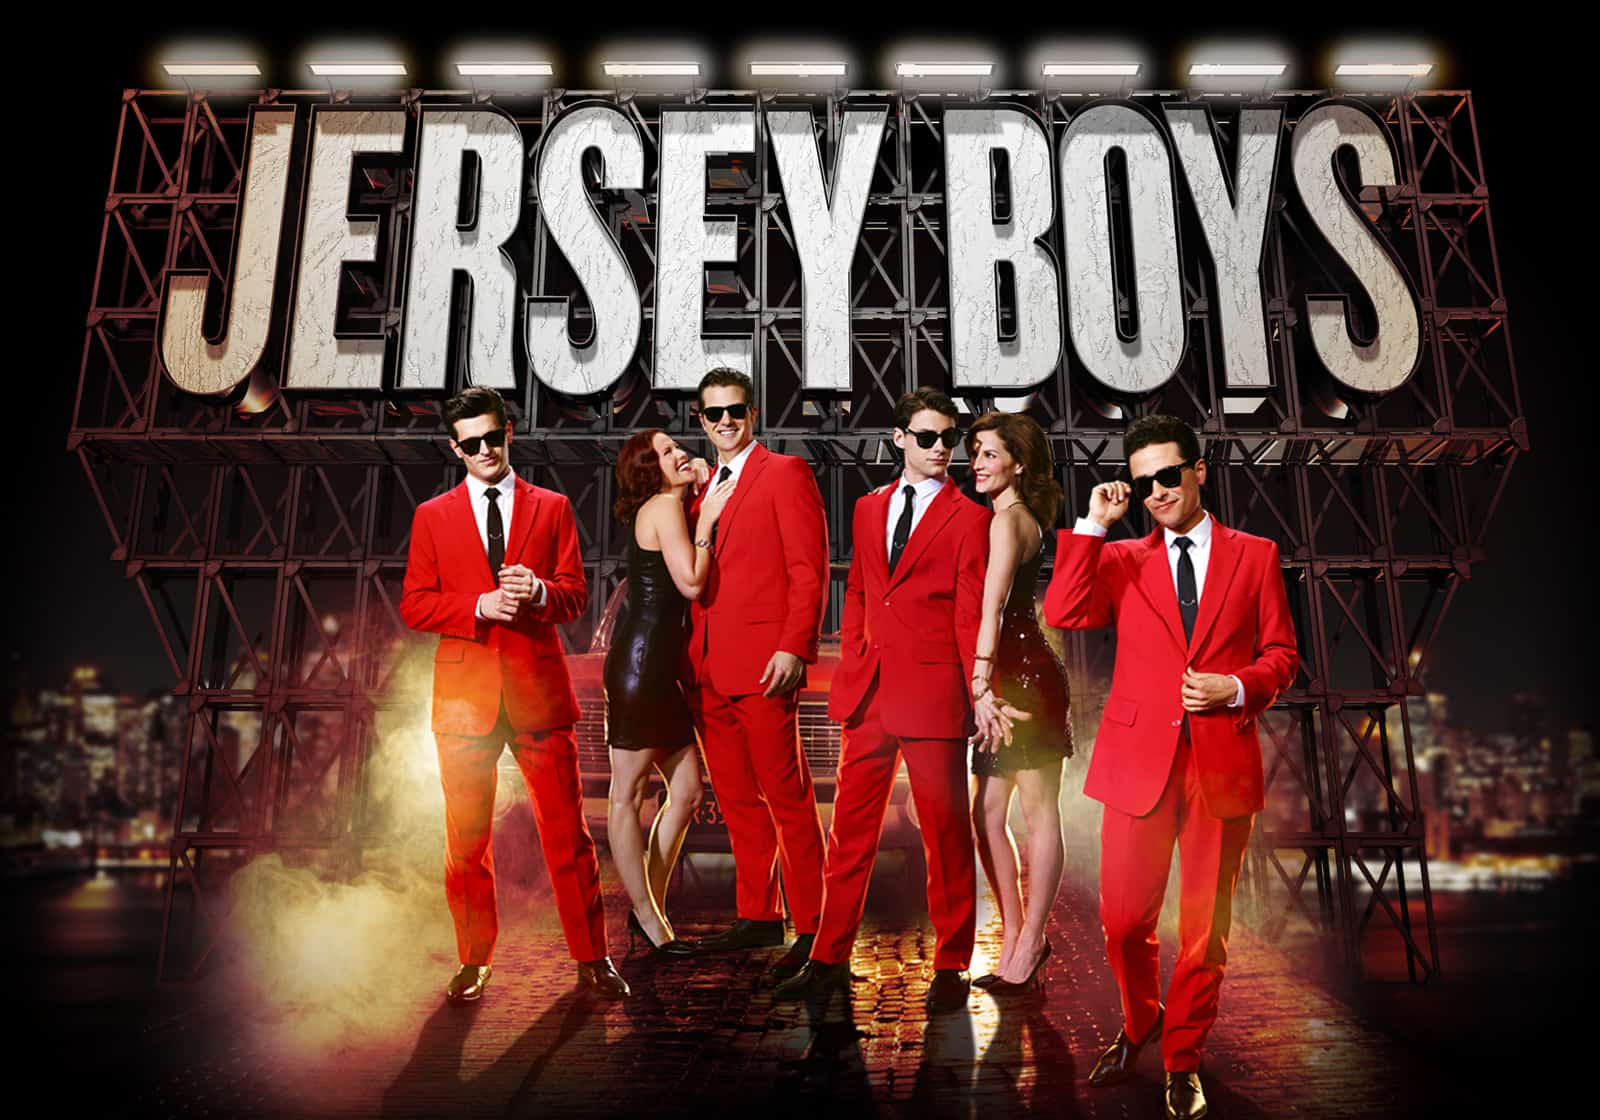 jersey guys 2017-10-10 official site for all the jersey boys shows, the behind-the-scenes hit musical about frankie valli & the four seasons playing now on in new york on tour.